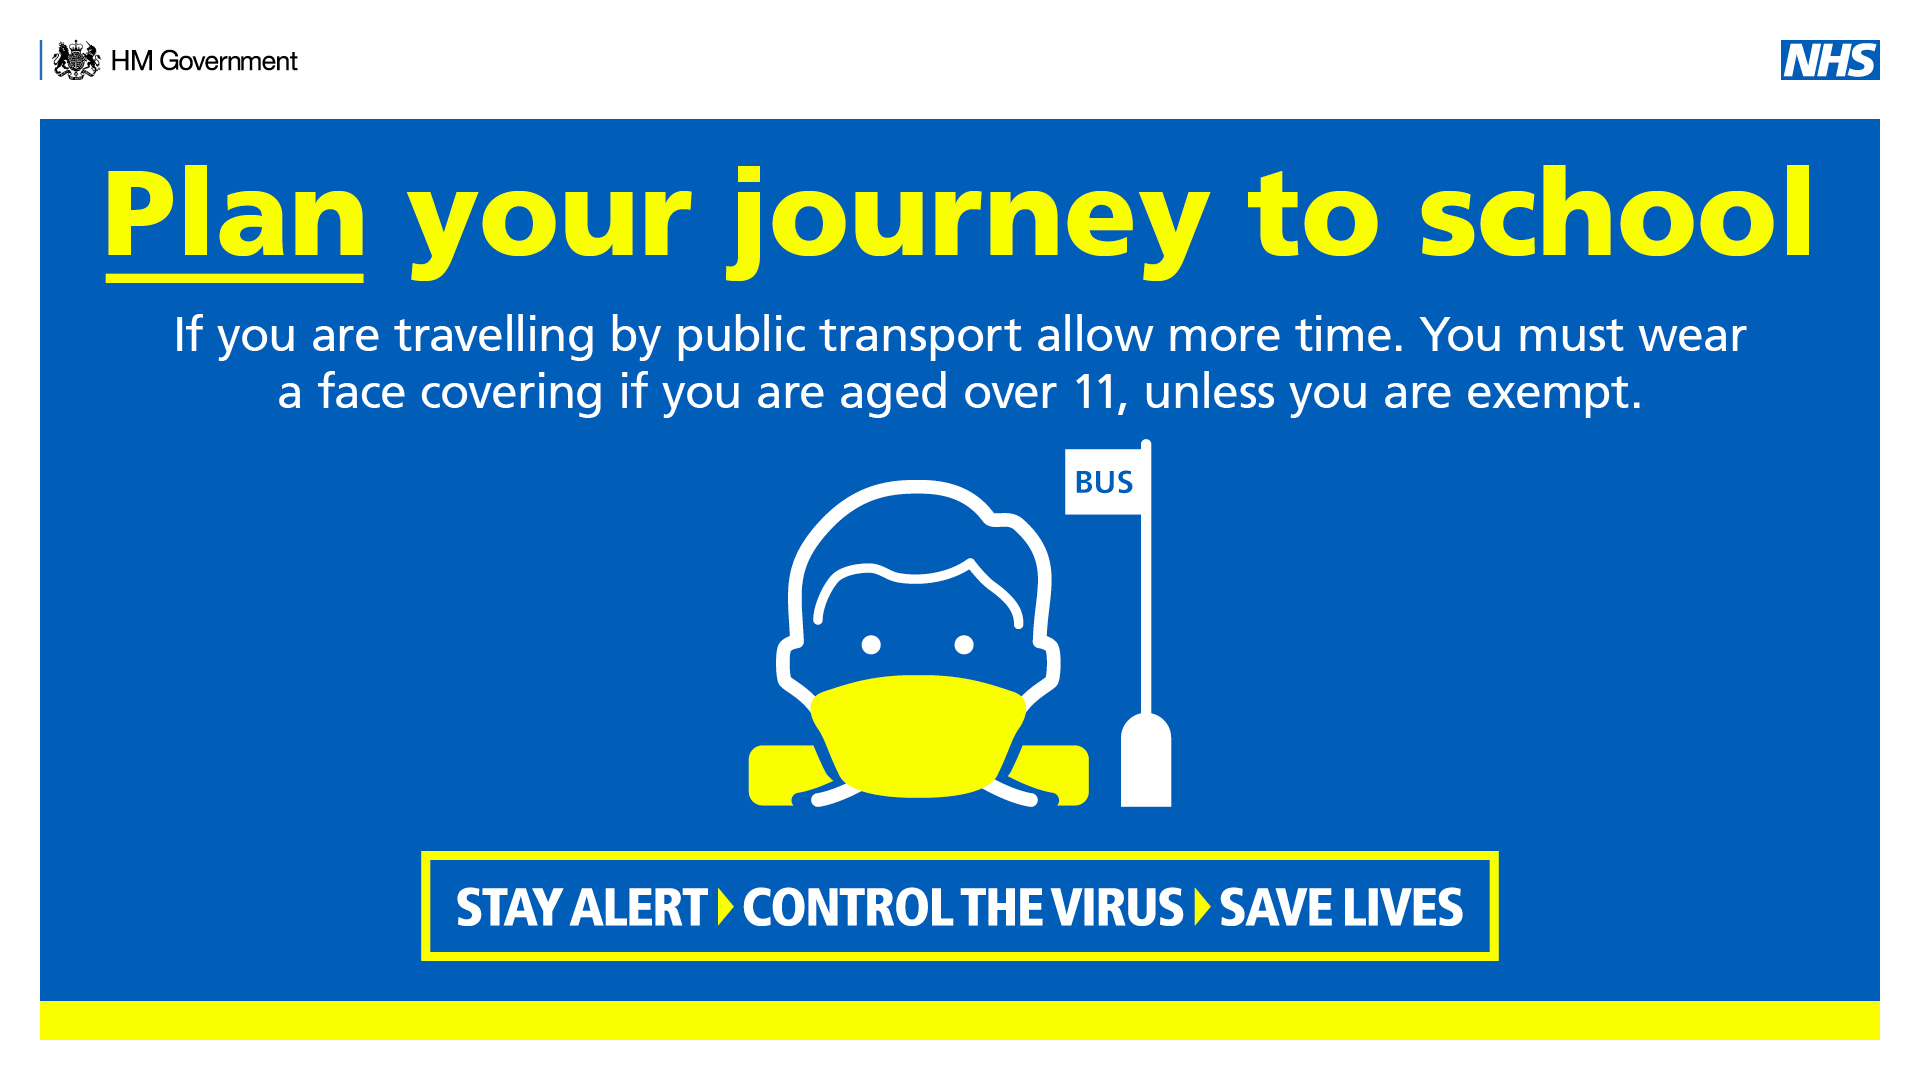 Plan your journey to school. If you are travelling by public transport allow more time. You must wear a face covering if you are aged over 11, unless you are exempt. STAY ALERT. CONTROL THE VIRUS. SAVE LIVES.